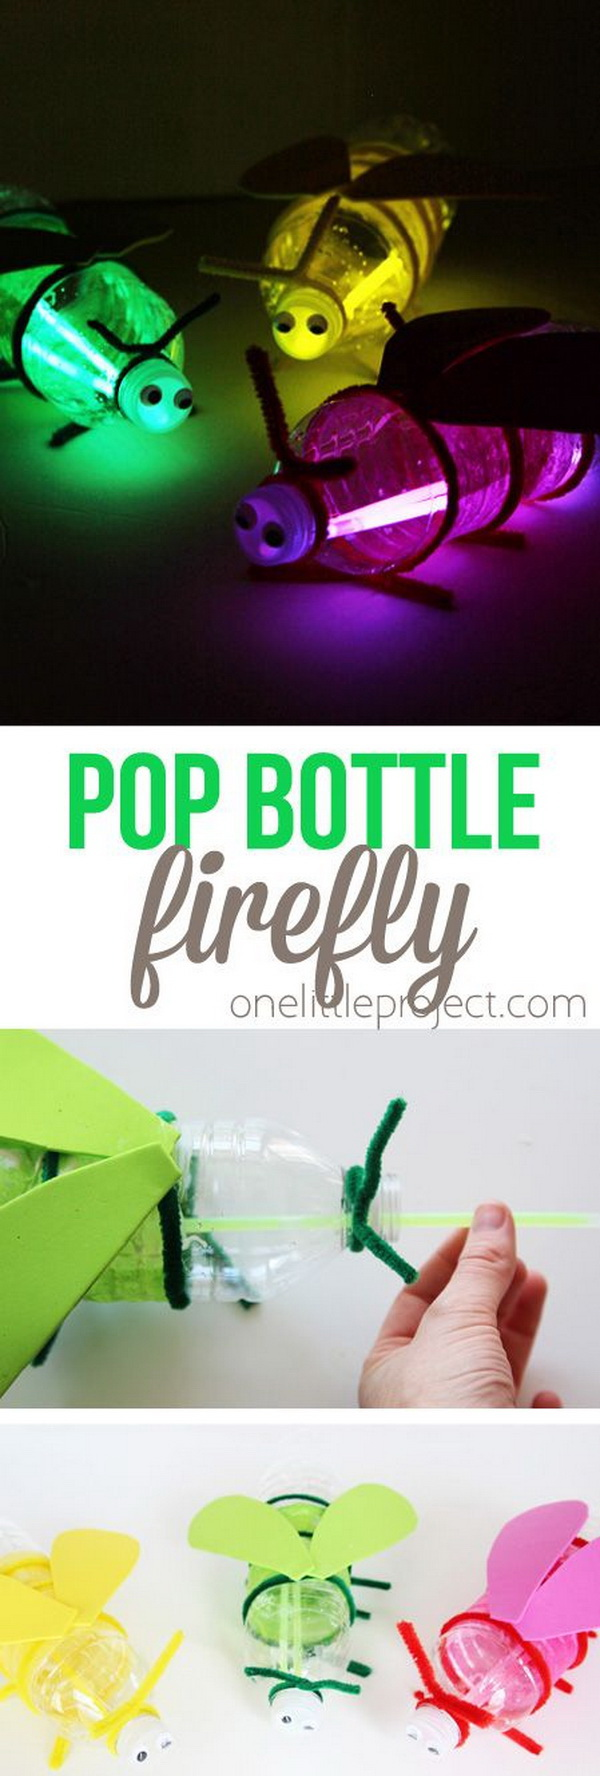 Easy Kids Craft Ideas: Handmade Pop Bottle Firefly.